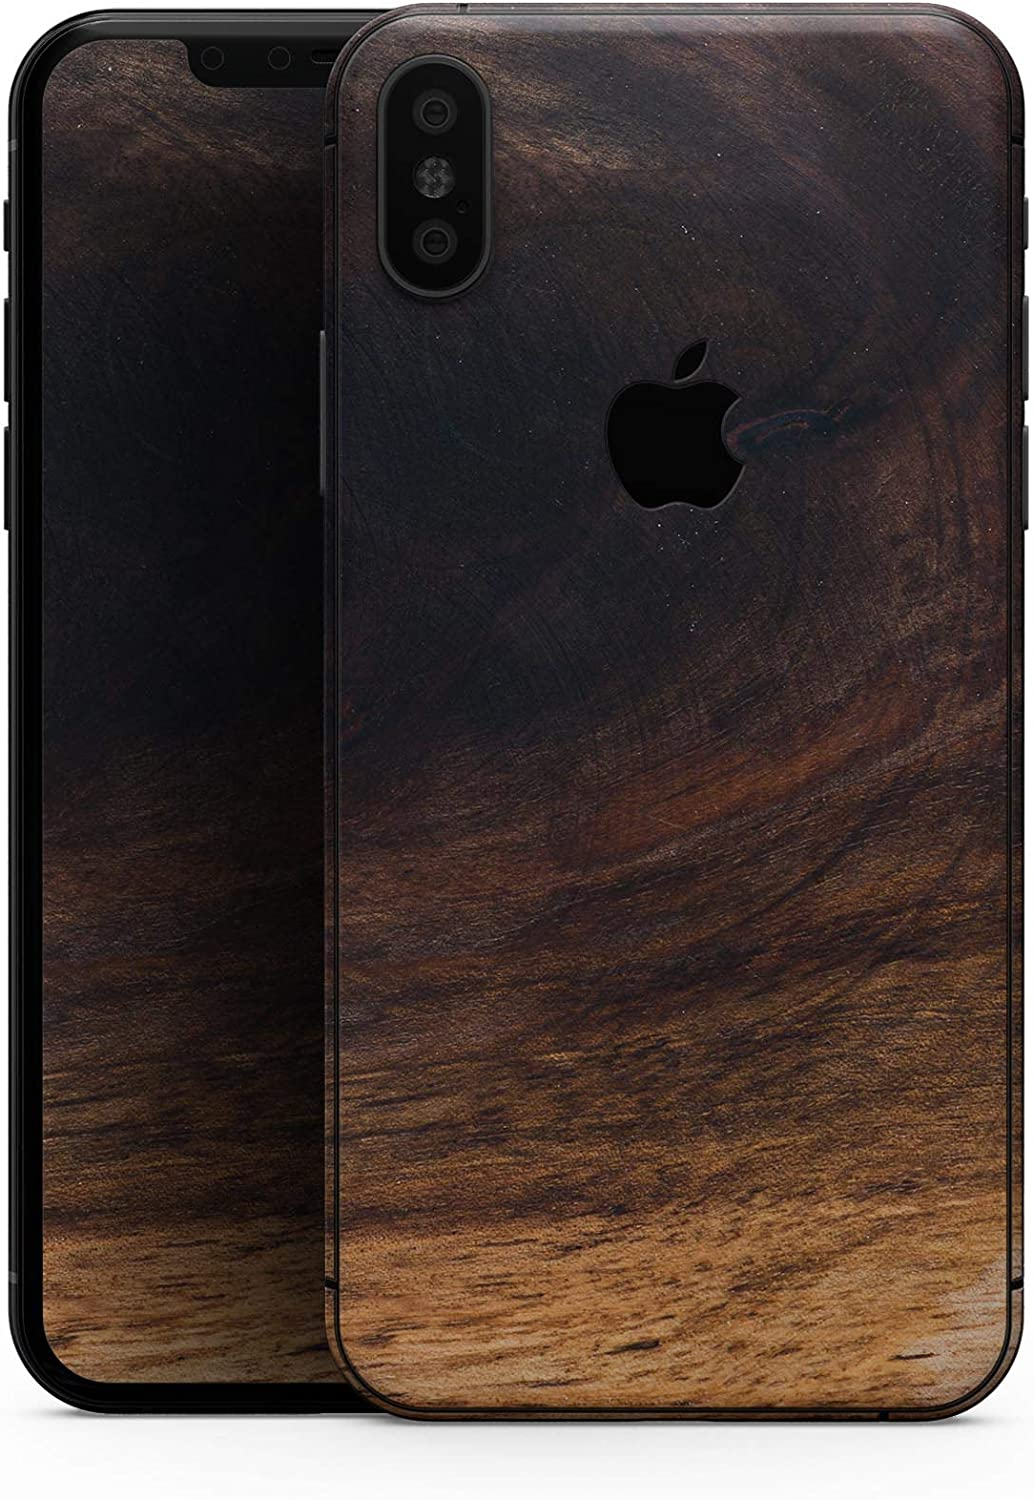 Knotted Rich Wood Plank - Design Skinz Premium Skin Decal Wrap for The iPhone 5s or SE